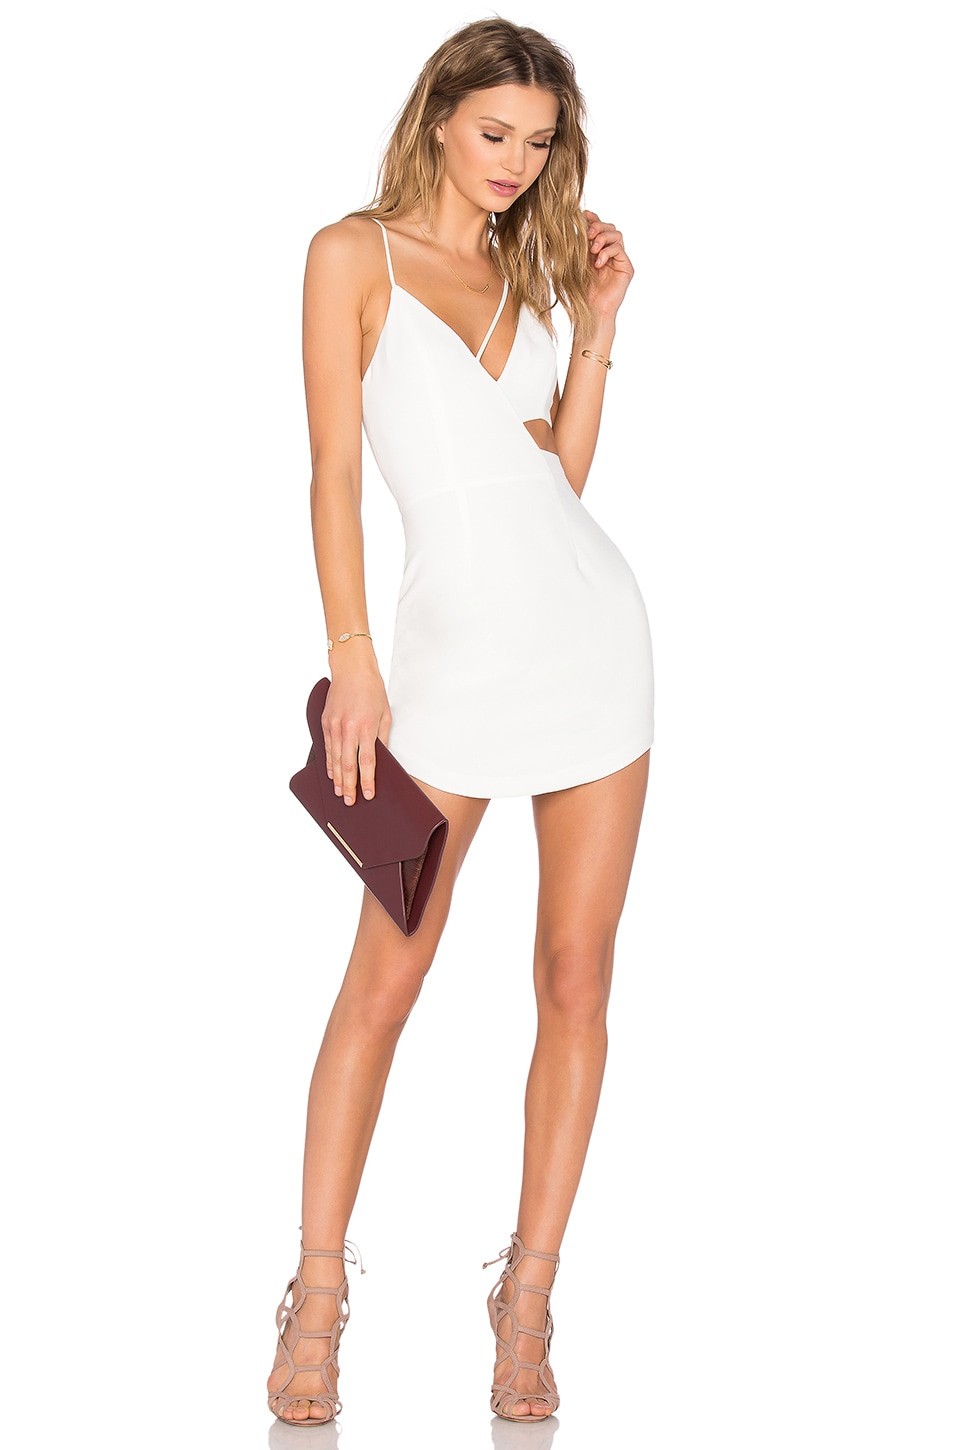 NBD Conquer The World Dress in White   REVOLVE